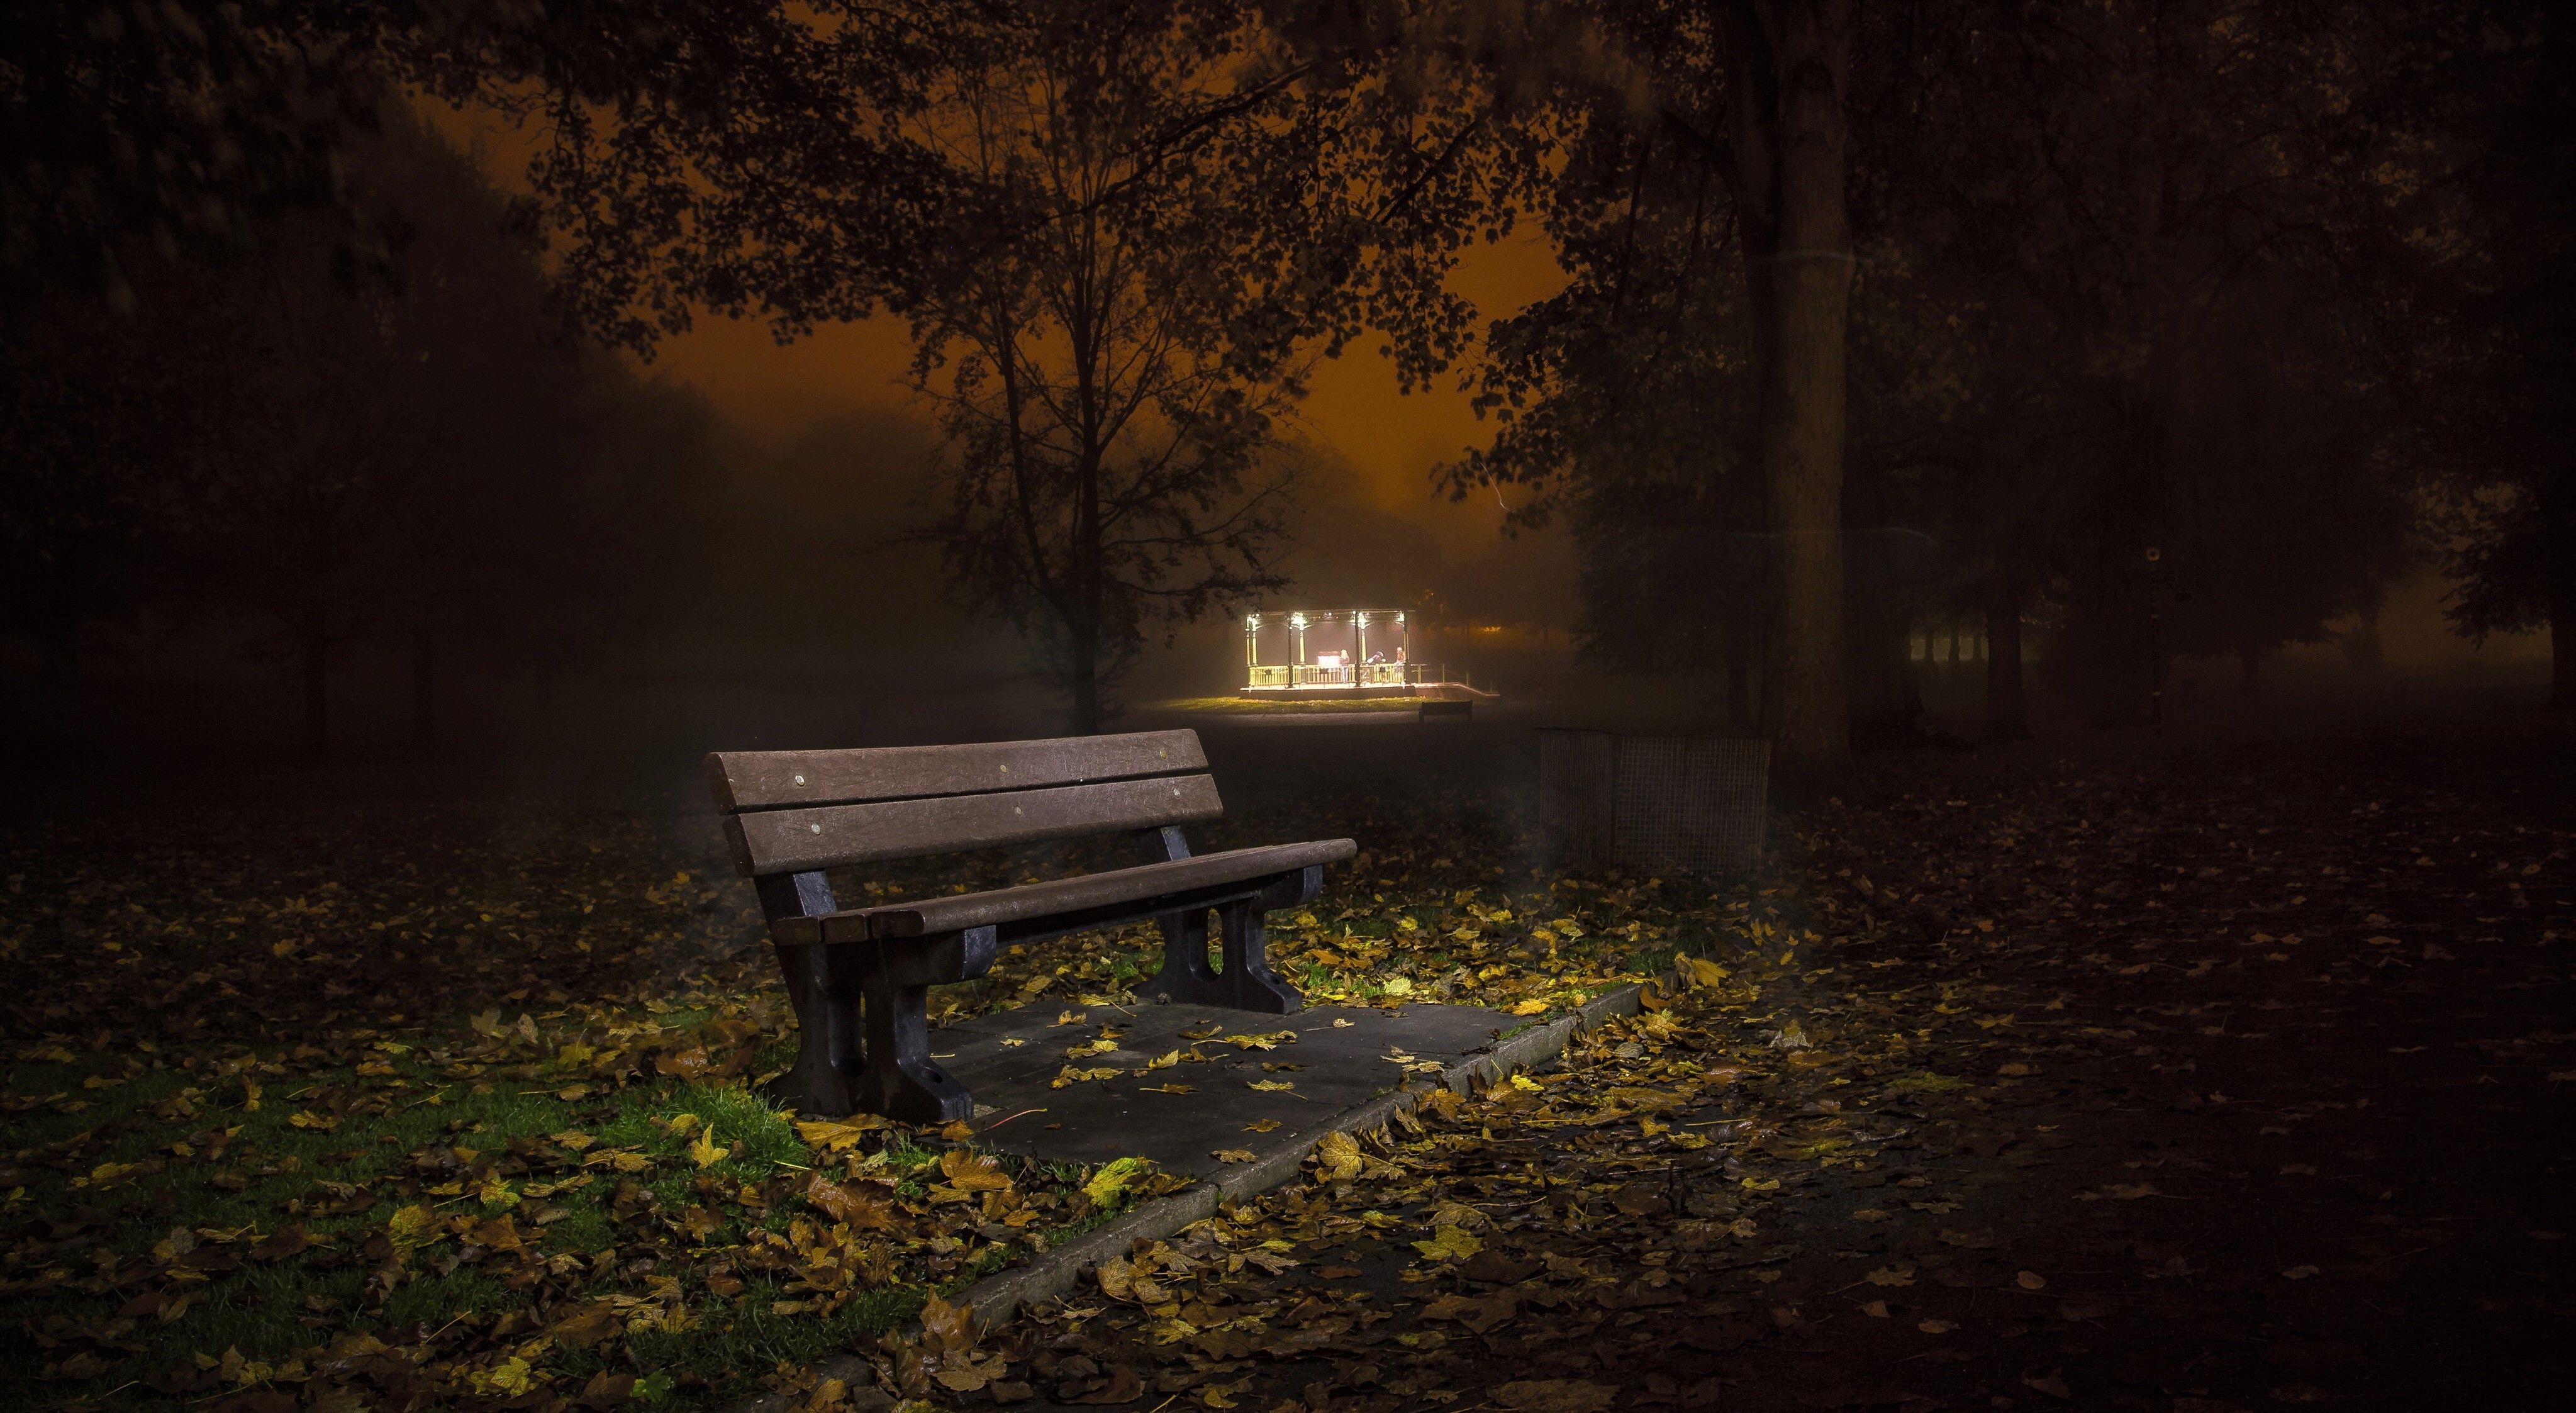 Bench In Autumn Park At Night 4k Ultra Hd Wallpaper Background